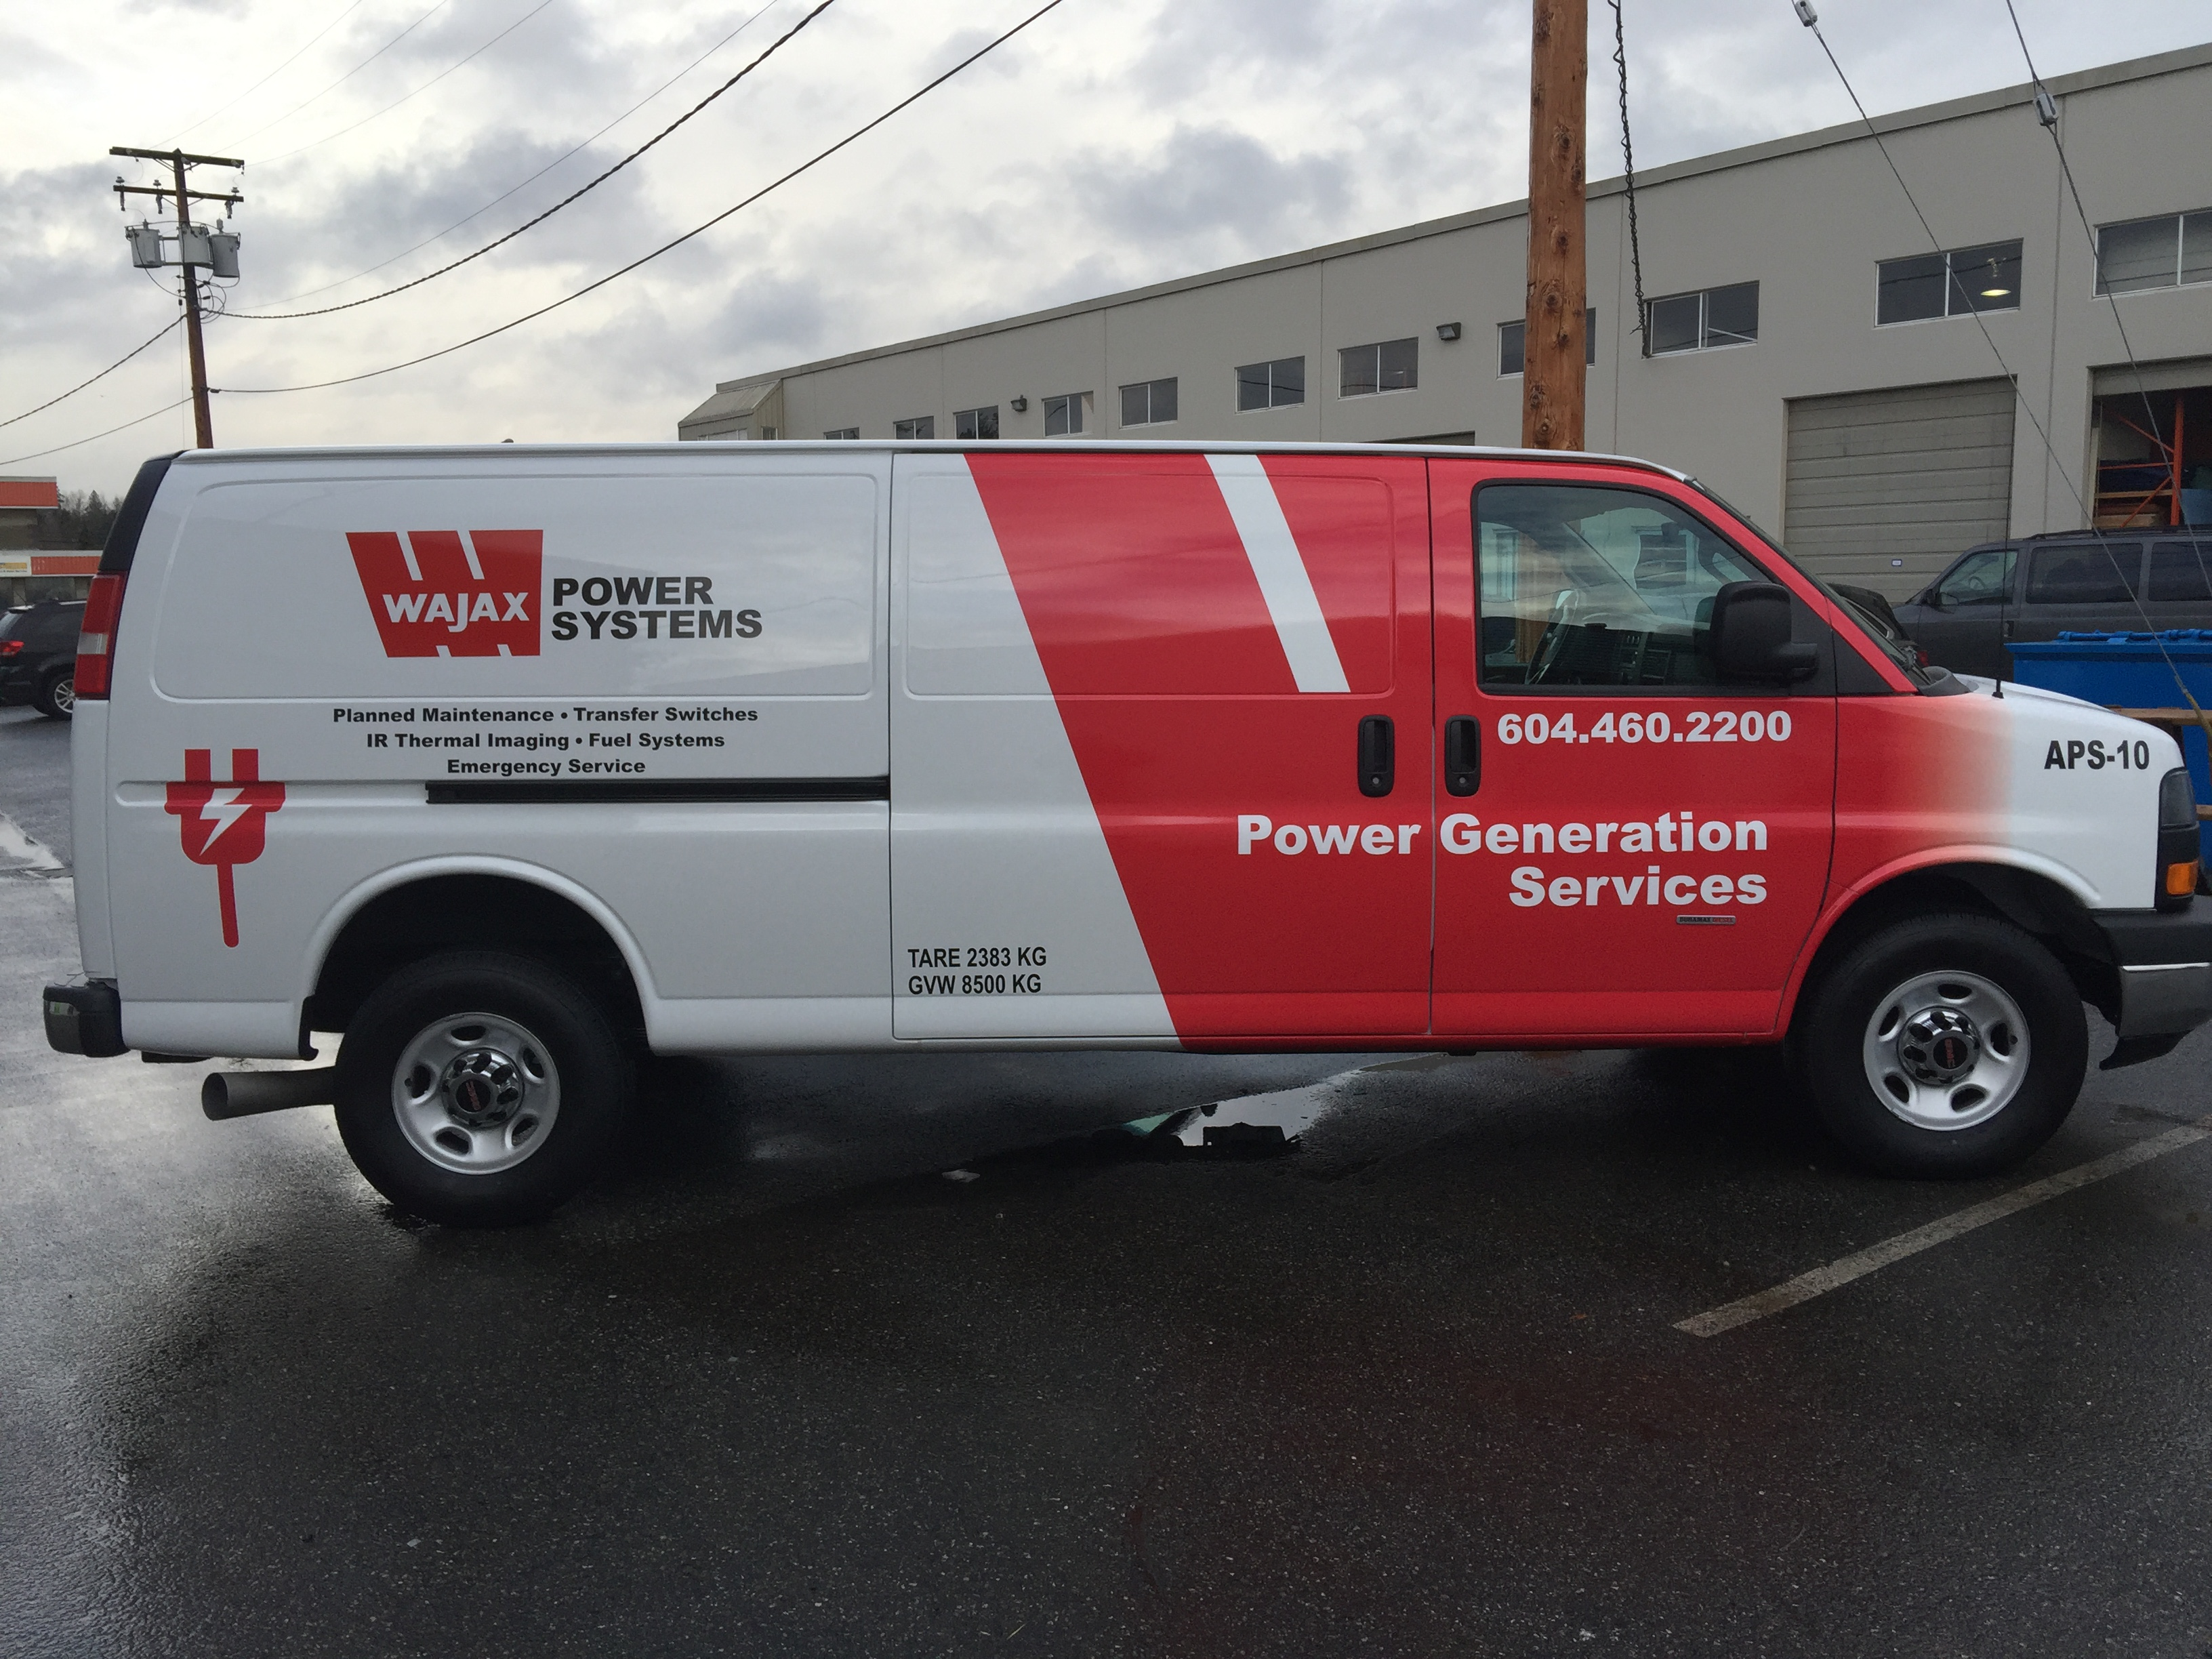 About wajax power systems - 69